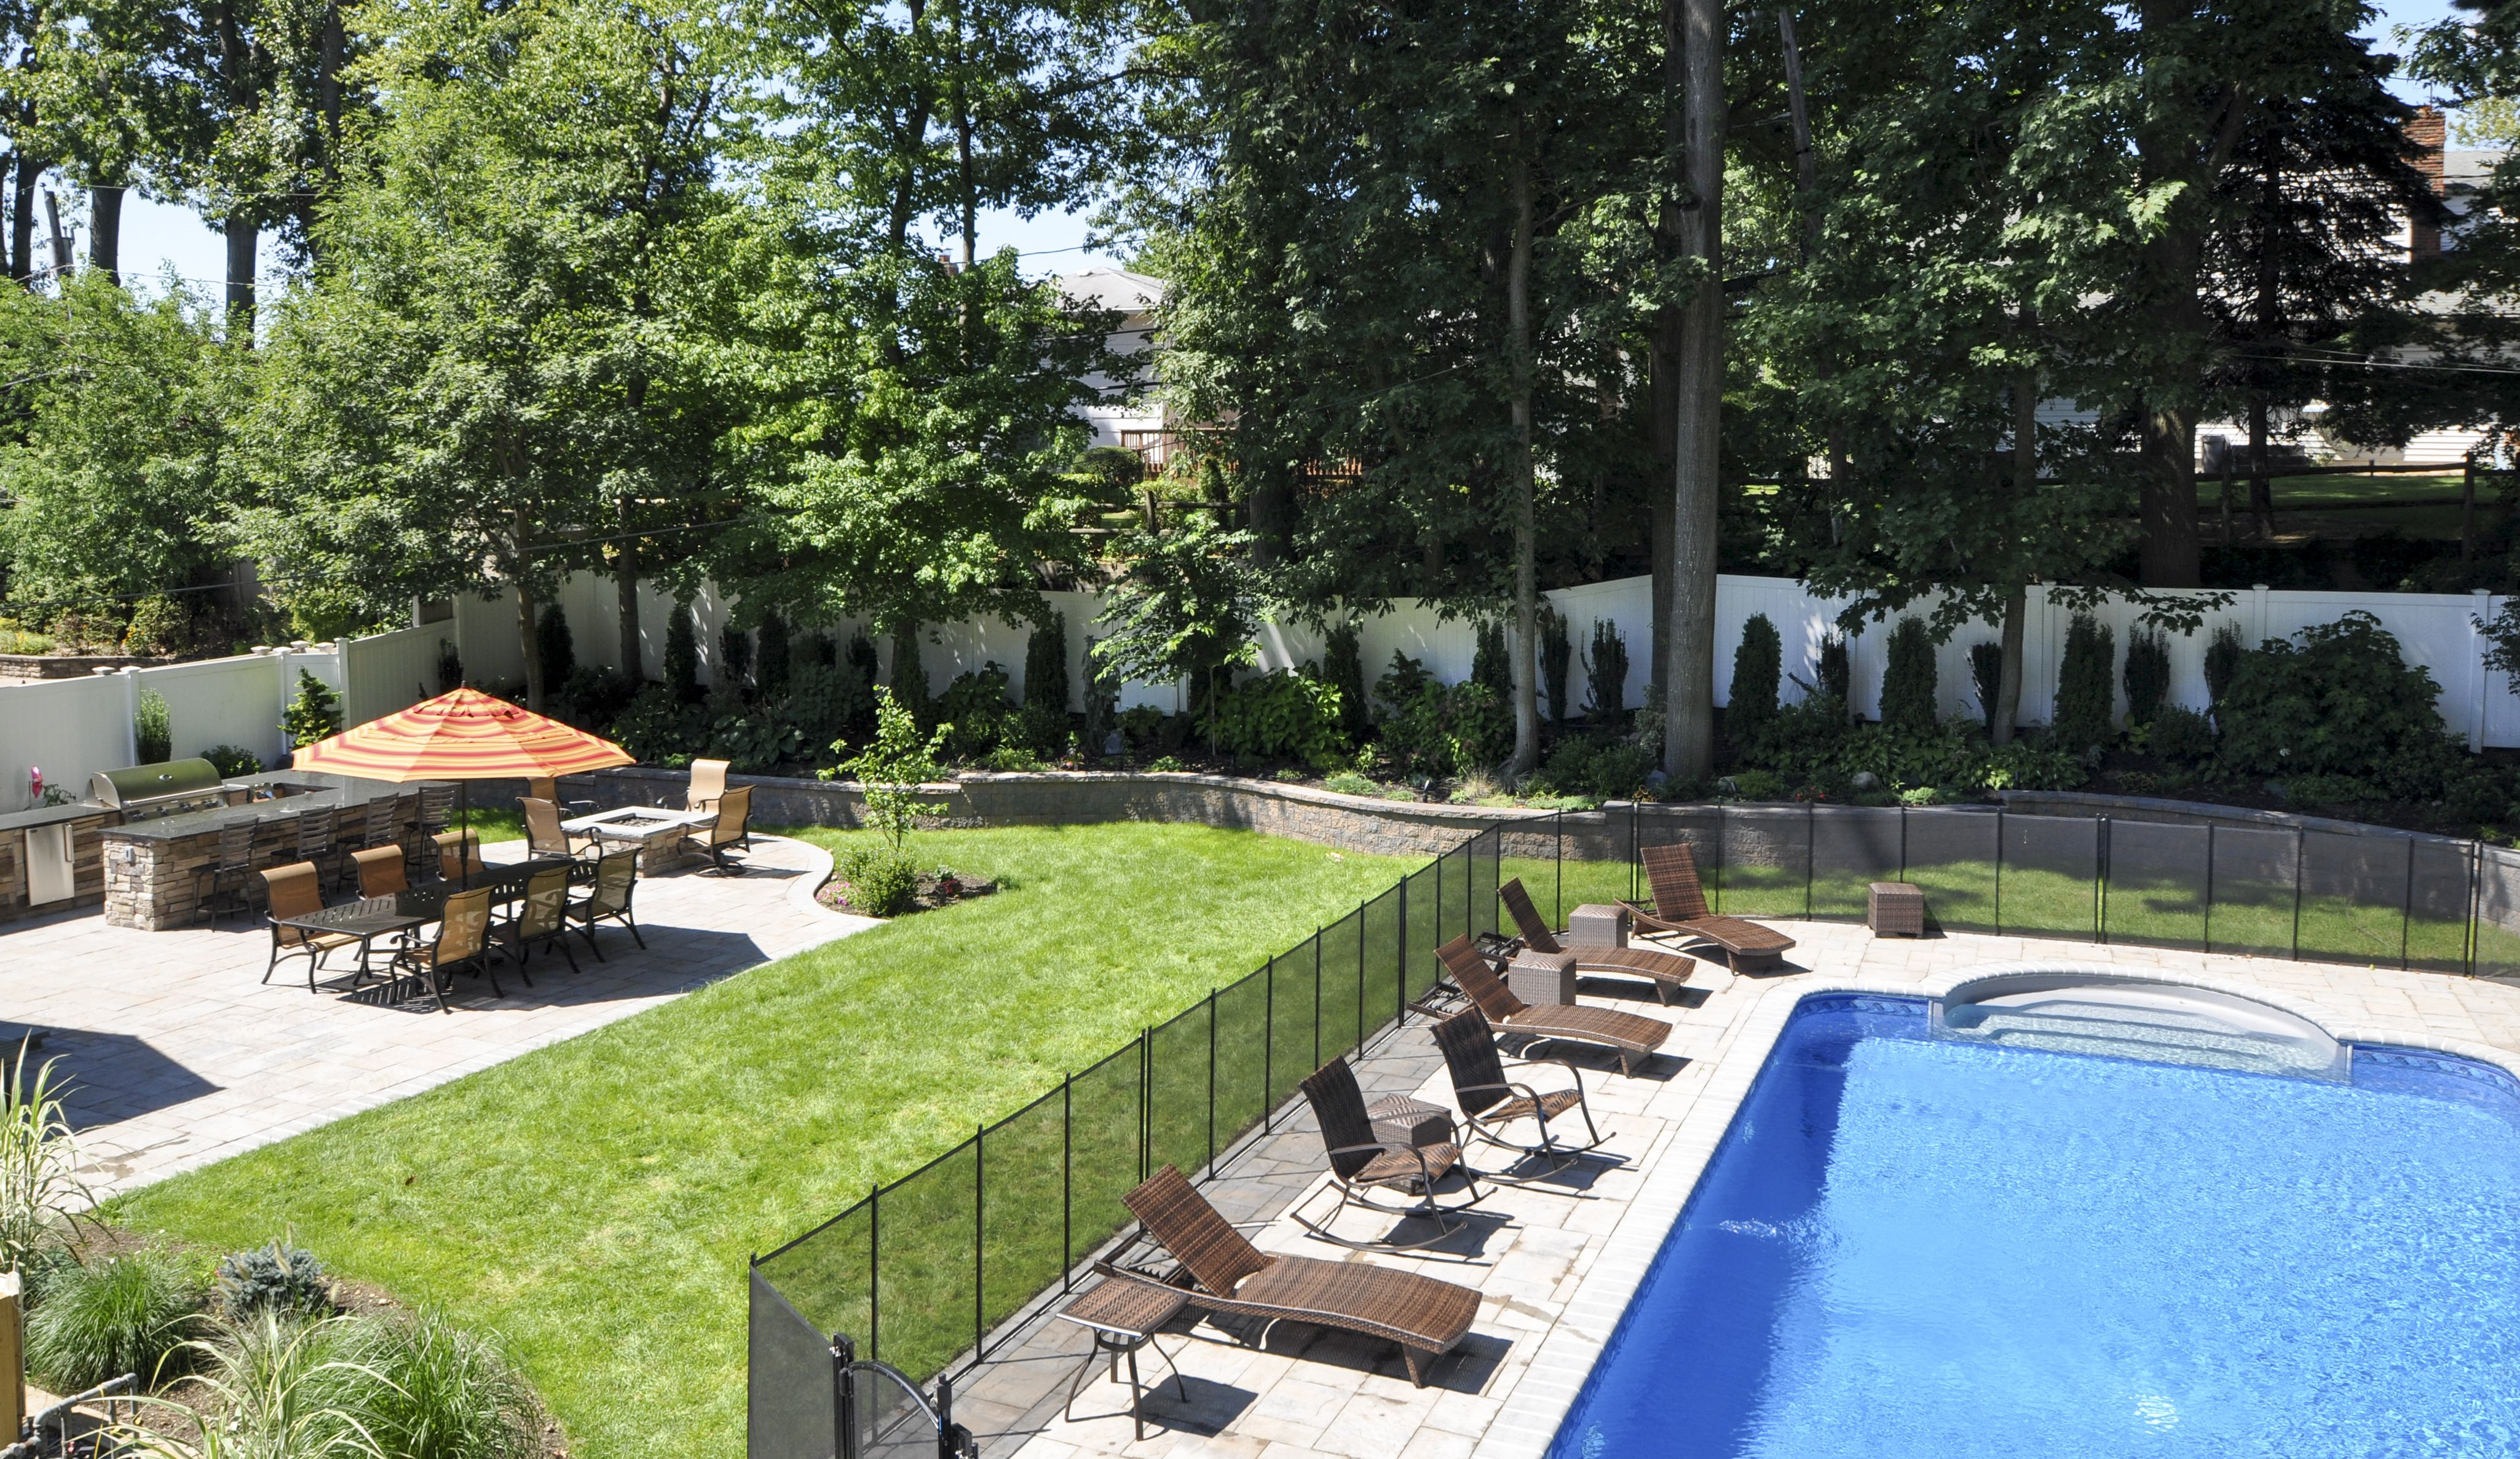 Cambridge Paver Patio And Retaining Wall System, Landscape Lighting,  Plantings, Sod, Outdoor